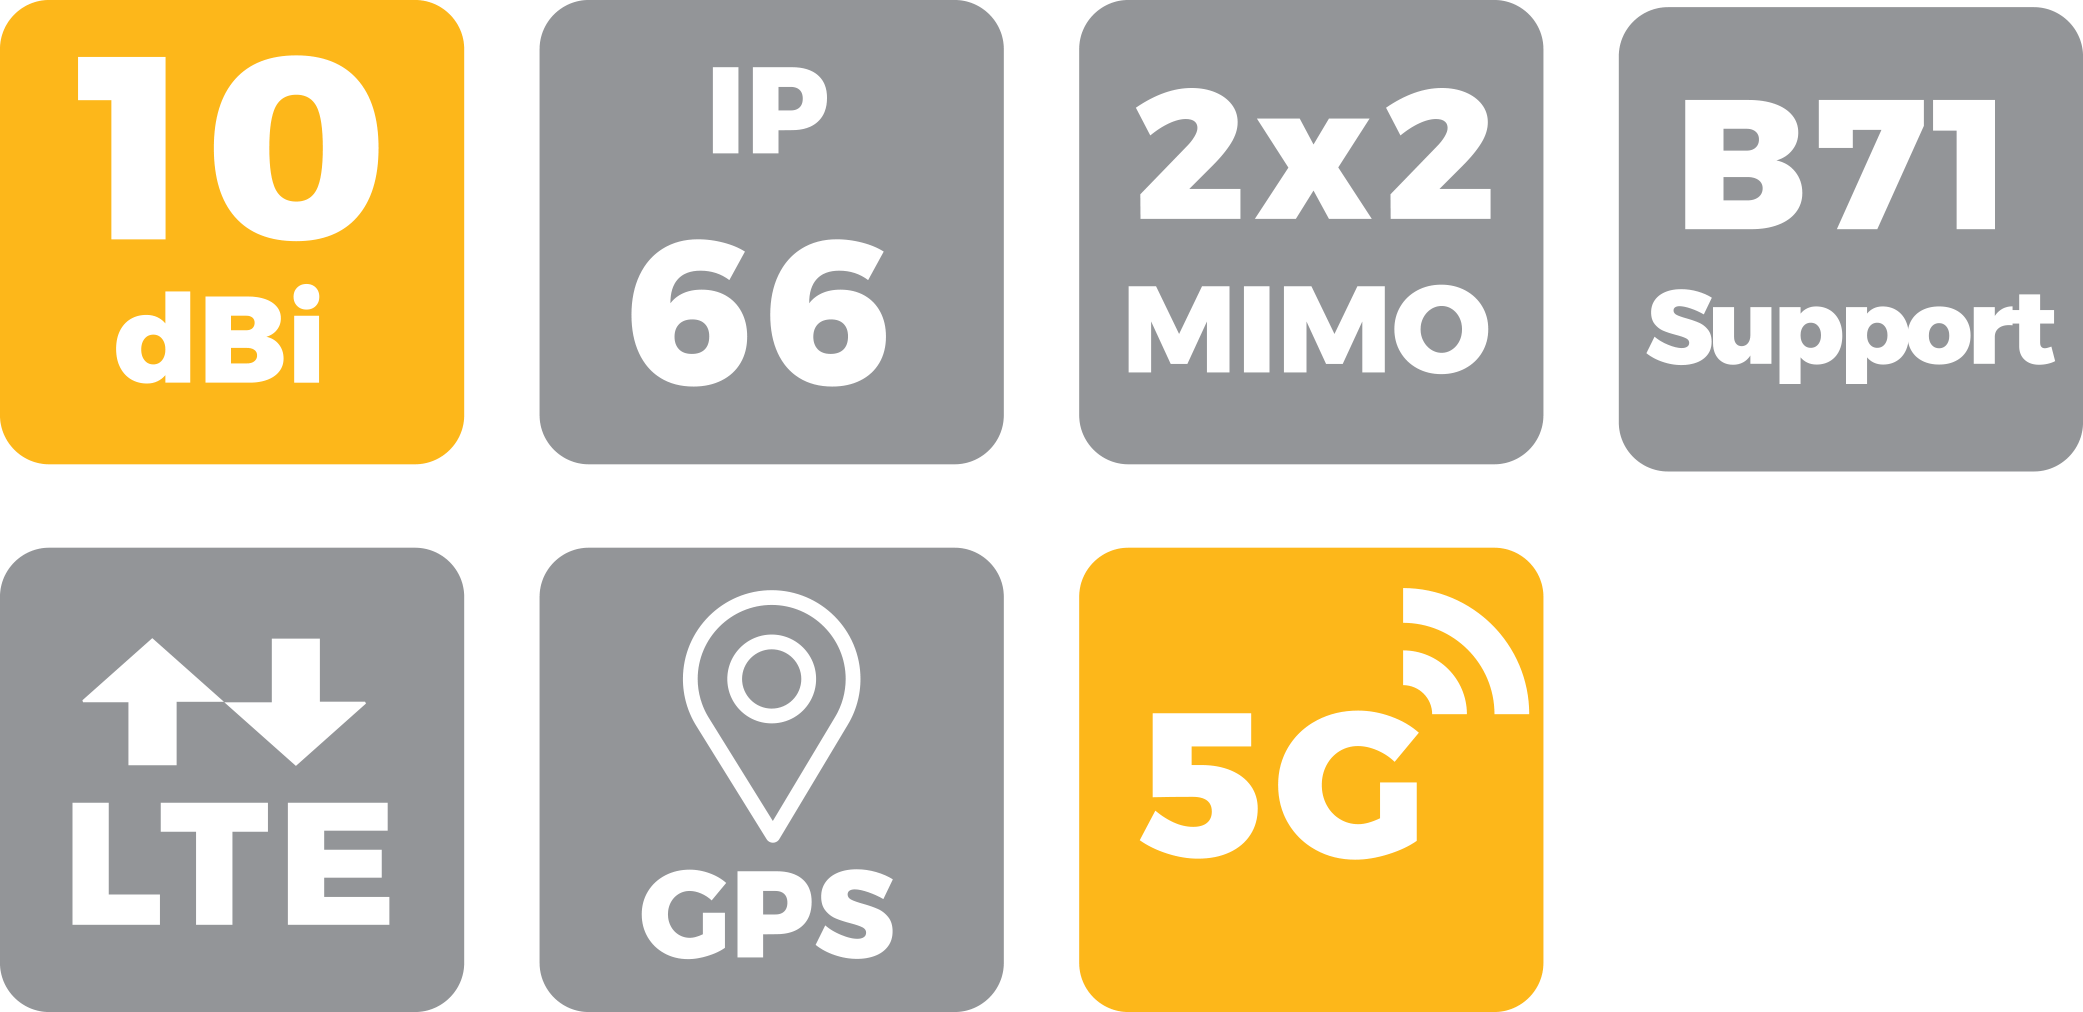 features_IoT 20G